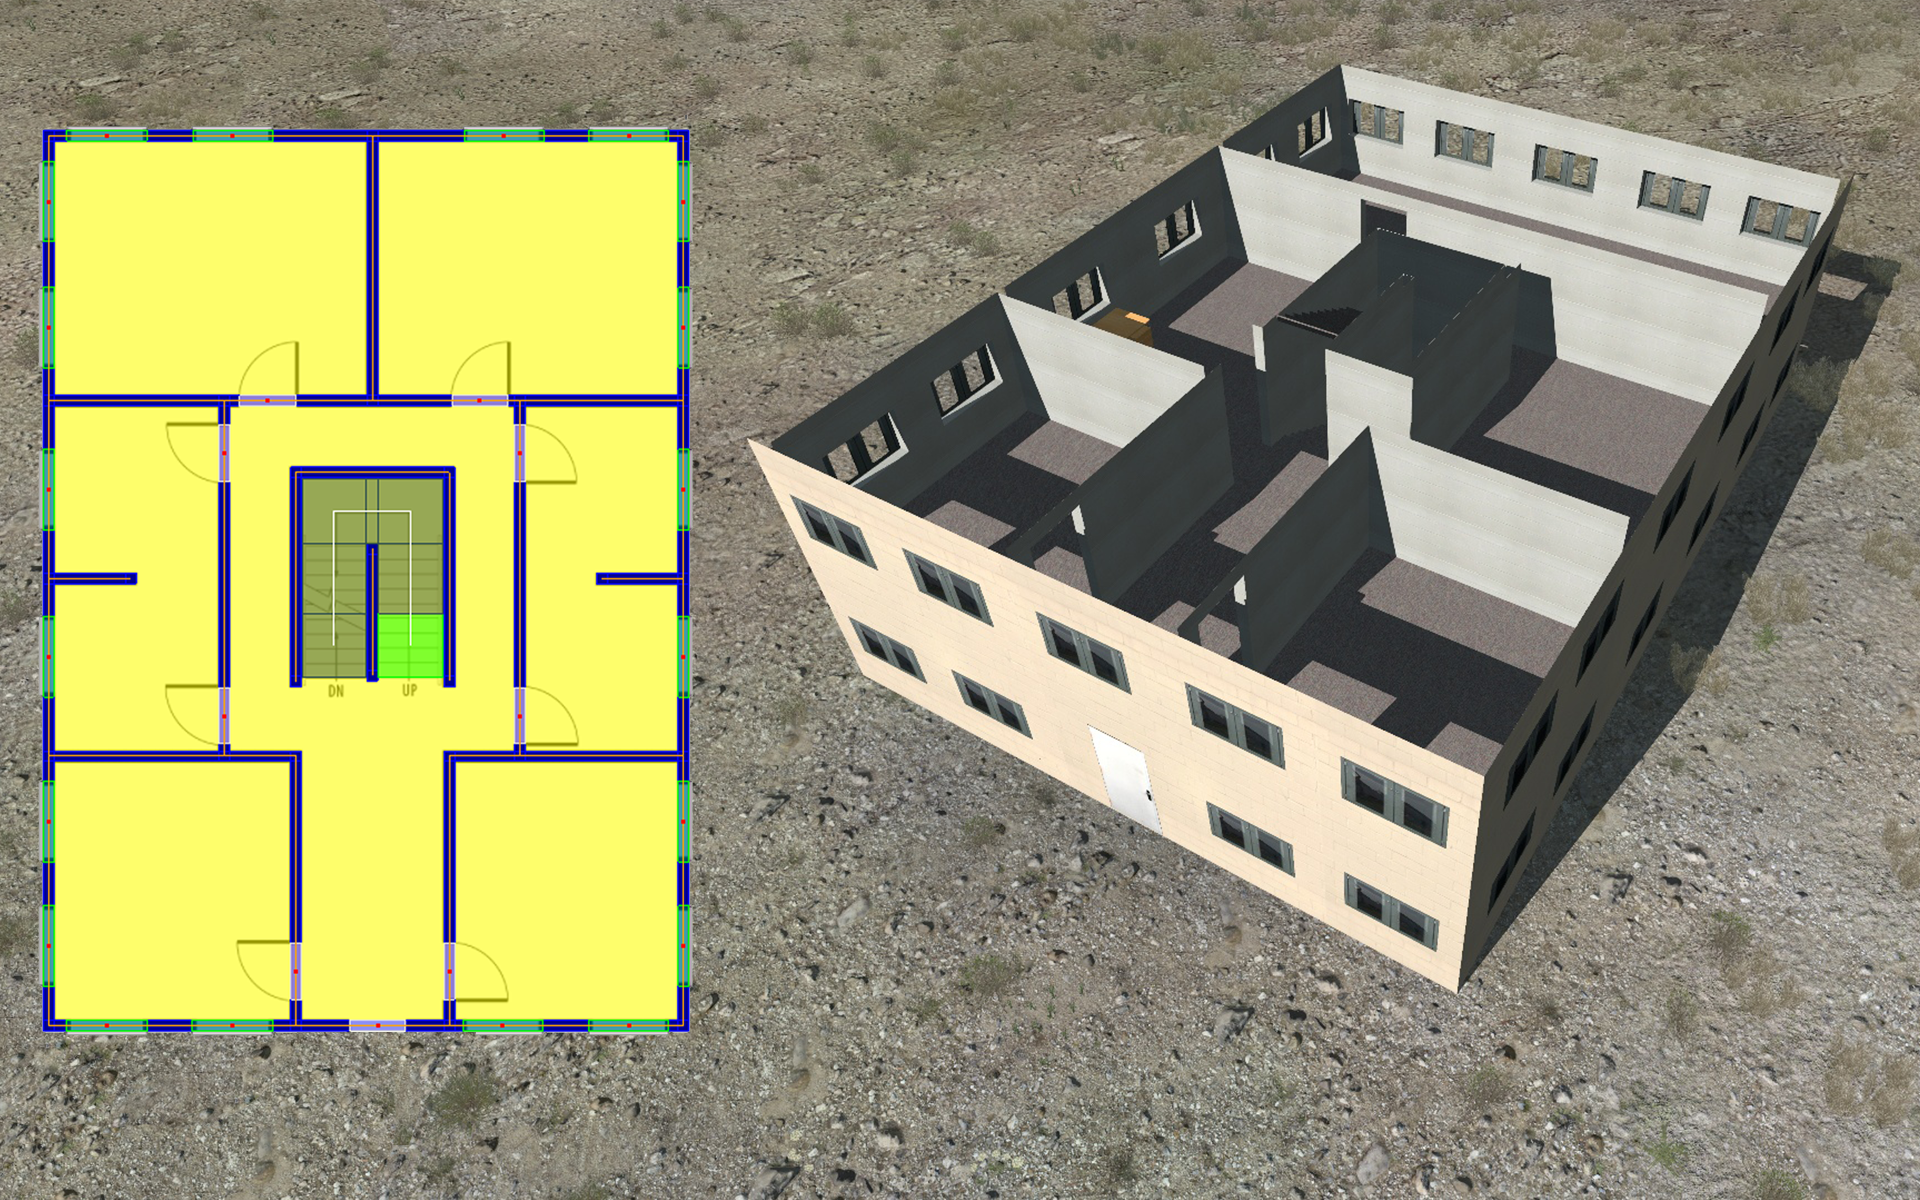 Vectors created in Building Designer side-by-side with the resulting model in VBS3